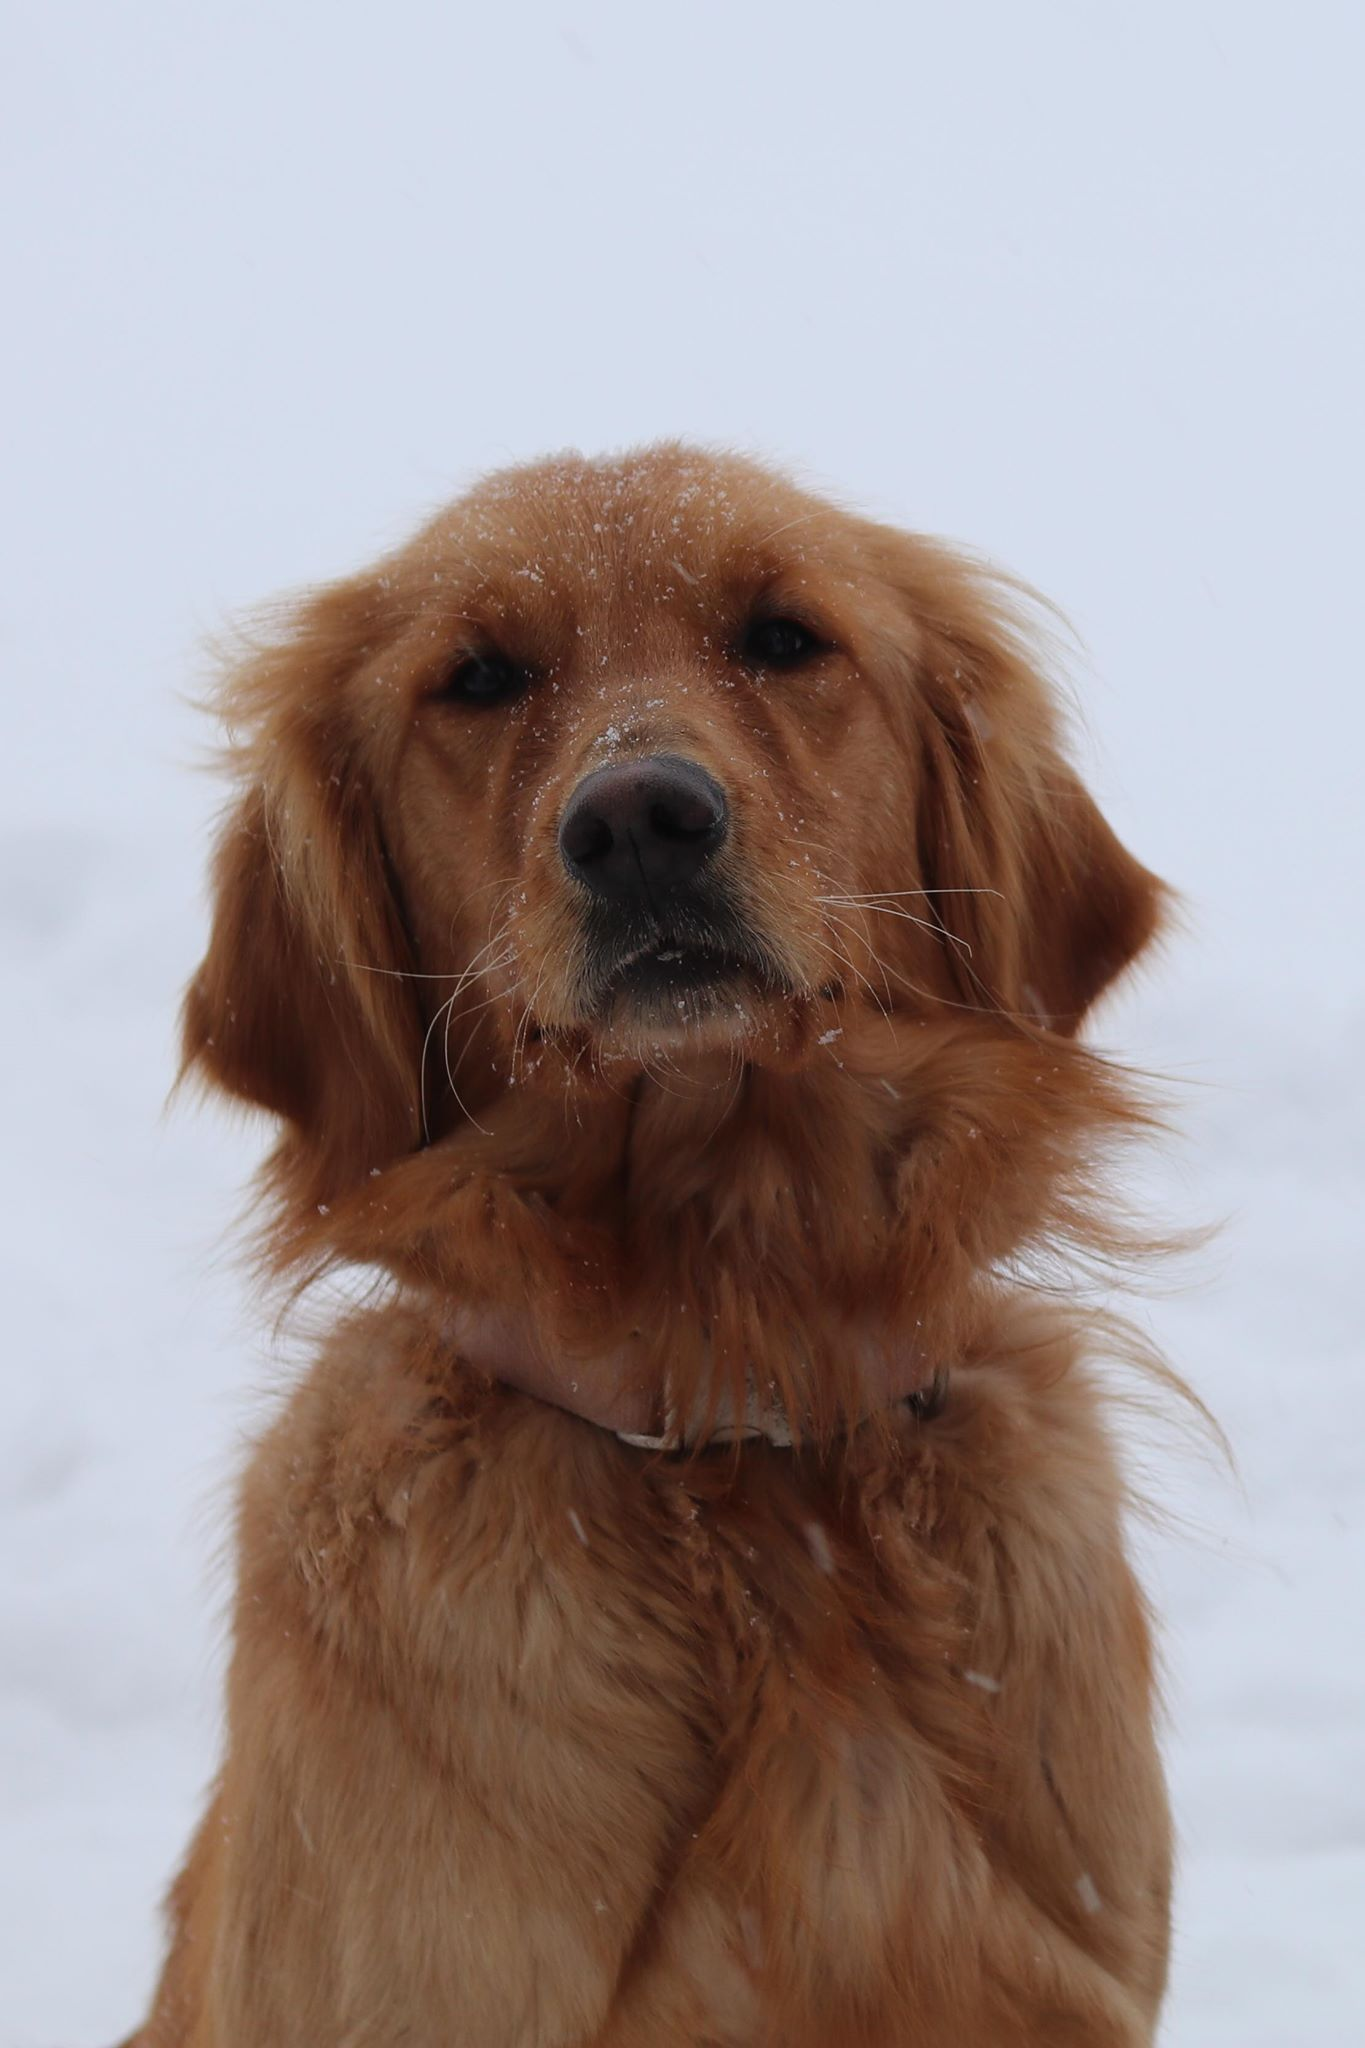 Red Retriever Puppies For Sale Near Me : retriever, puppies, Golden, Retriever, Puppies, Retriever,, Puppy,, Puppy